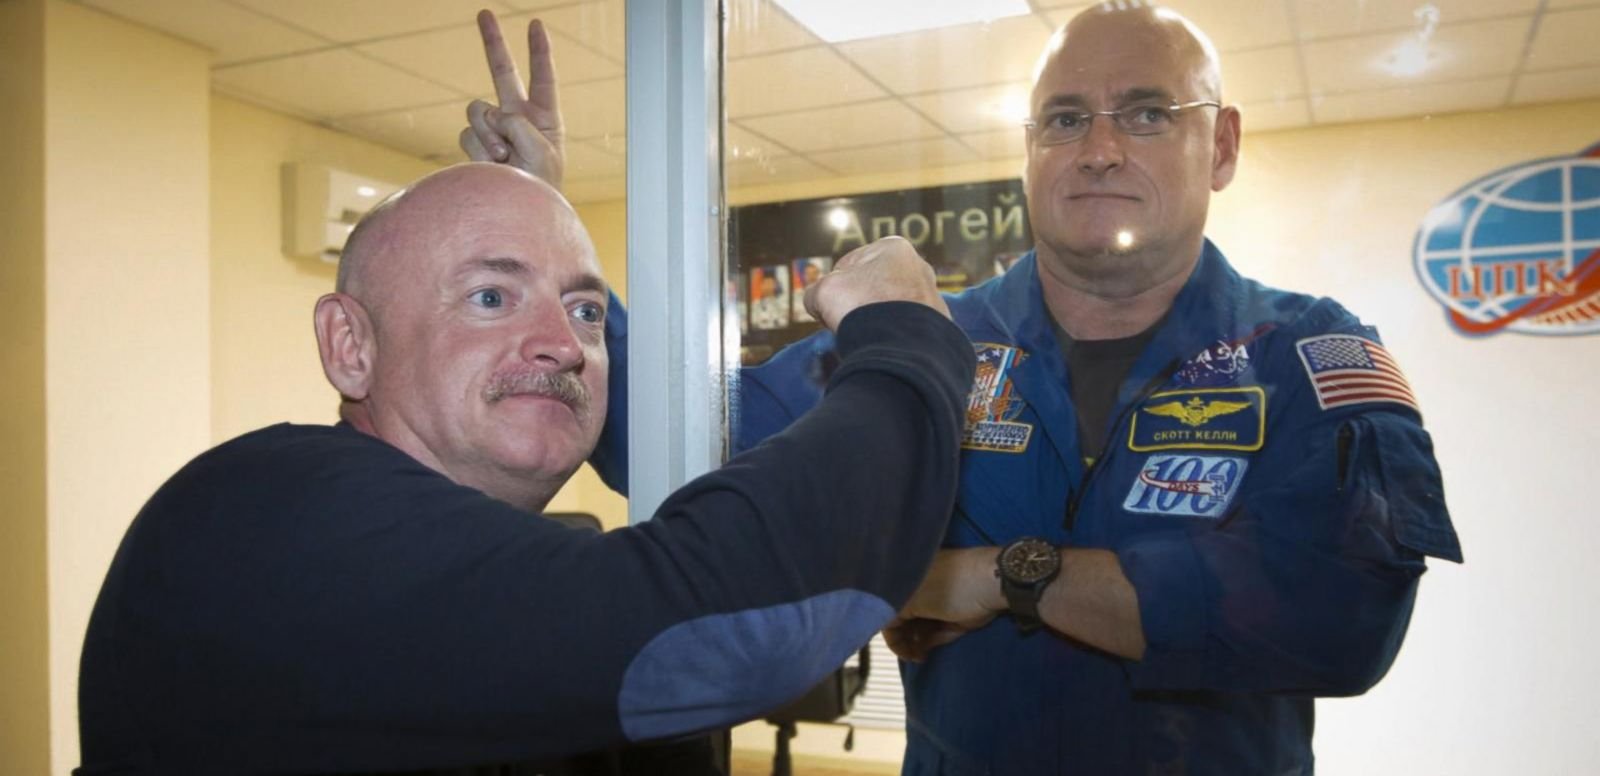 VIDEO: The Astronaut Who Agreed to Leave Earth for 342 Days